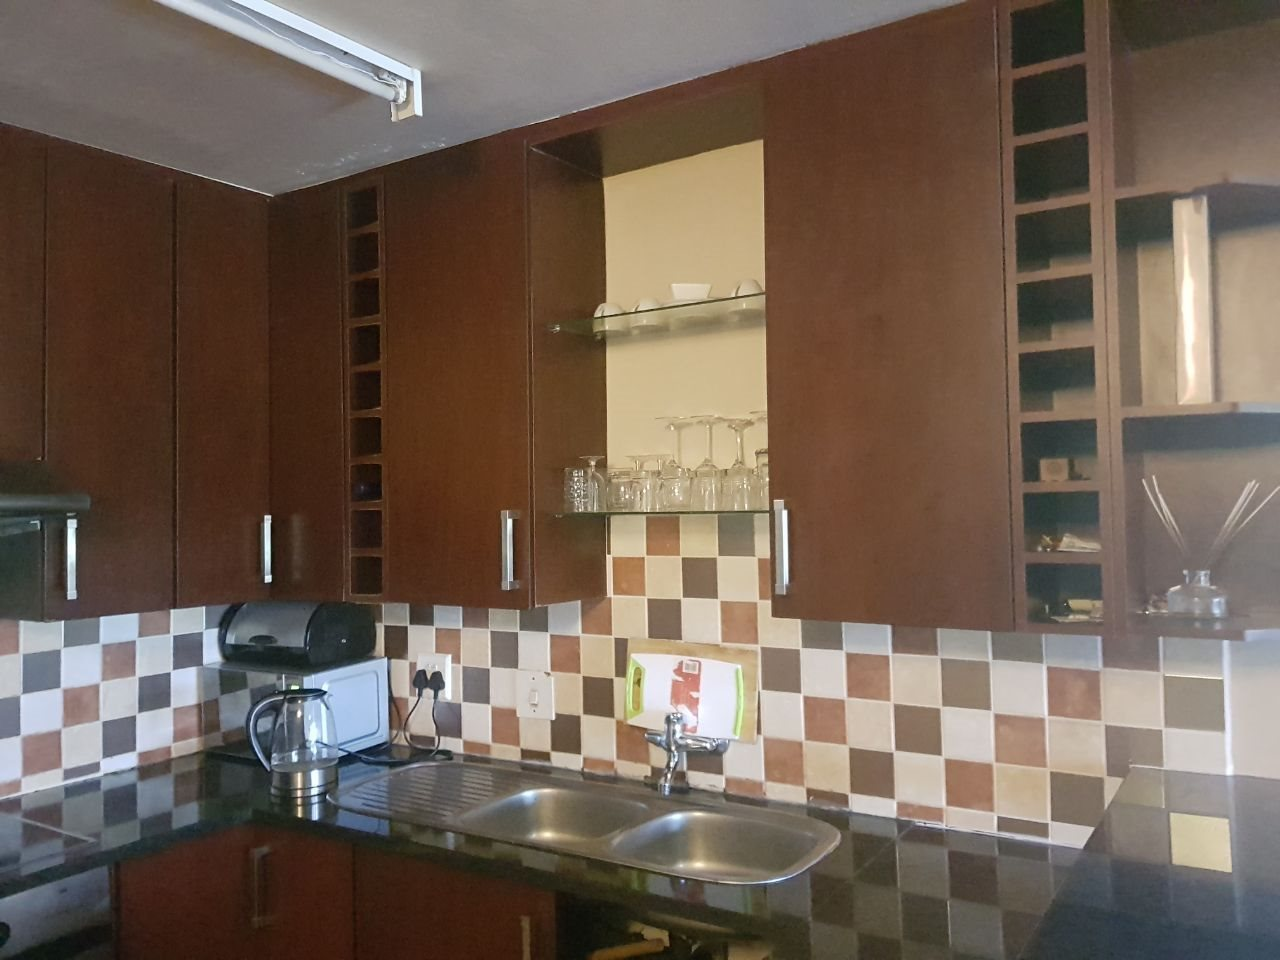 Meer En See property for sale. Ref No: 13590947. Picture no 6